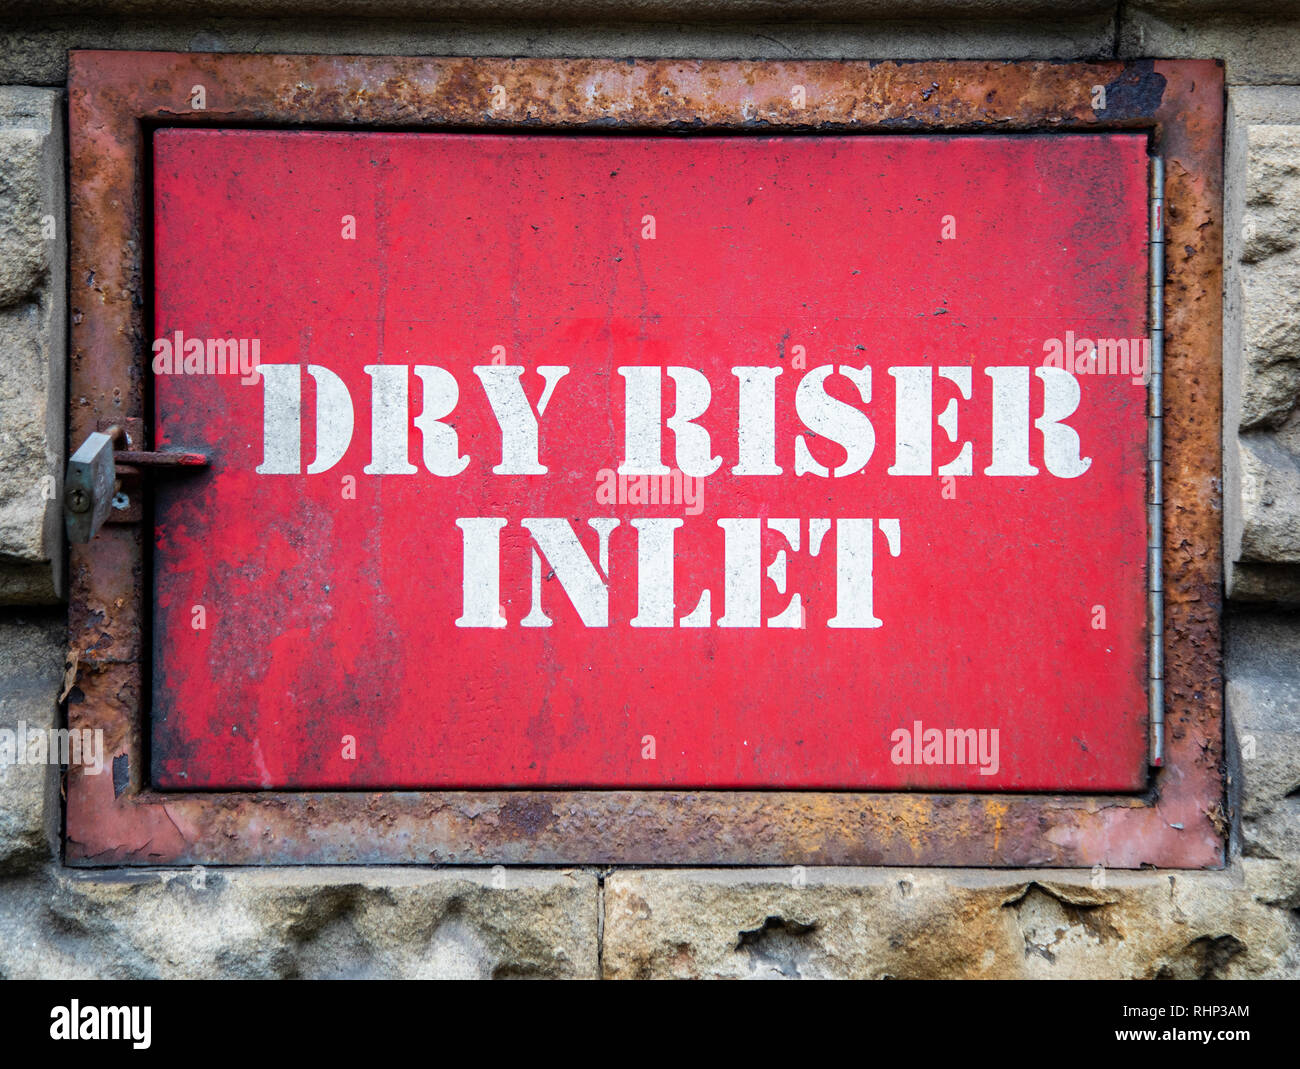 Padlocked entrance to a dry riser inlet with white stencil text against a red background and rusted metal edge on stonework Liverpool January 2019 Stock Photo